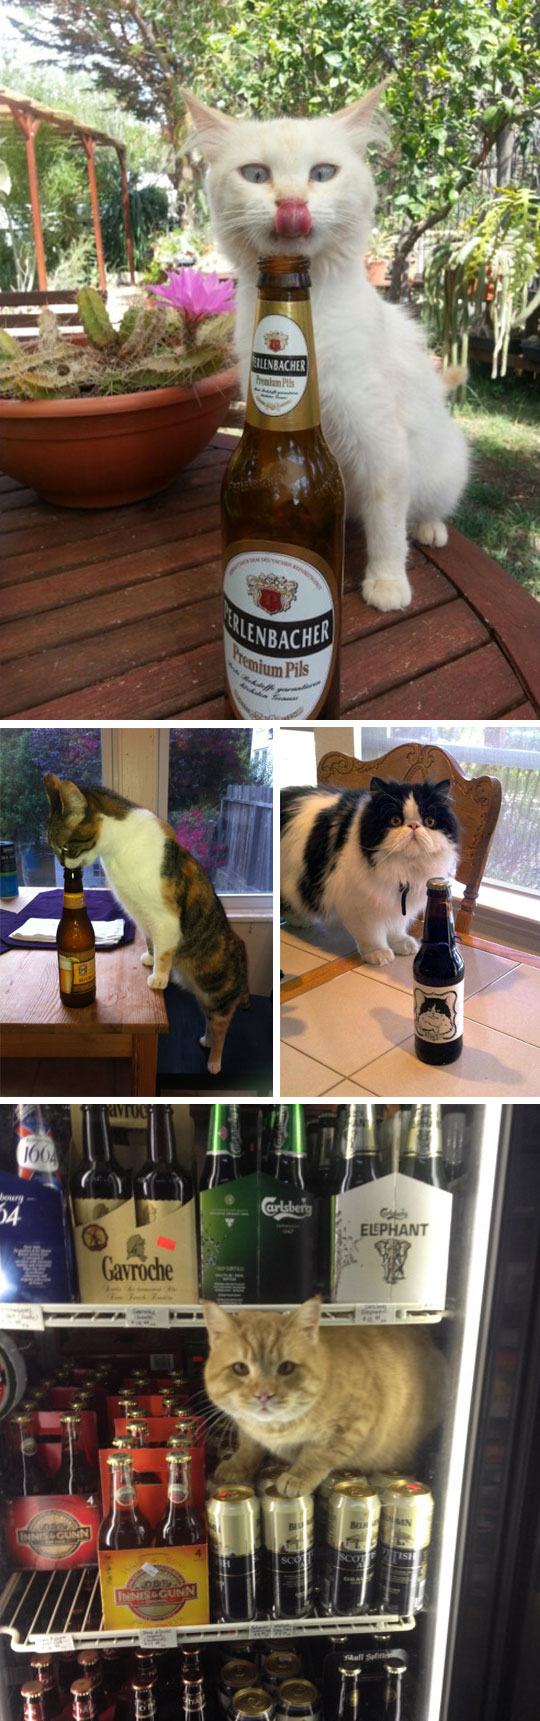 cute-cat-licking-beer-bottle